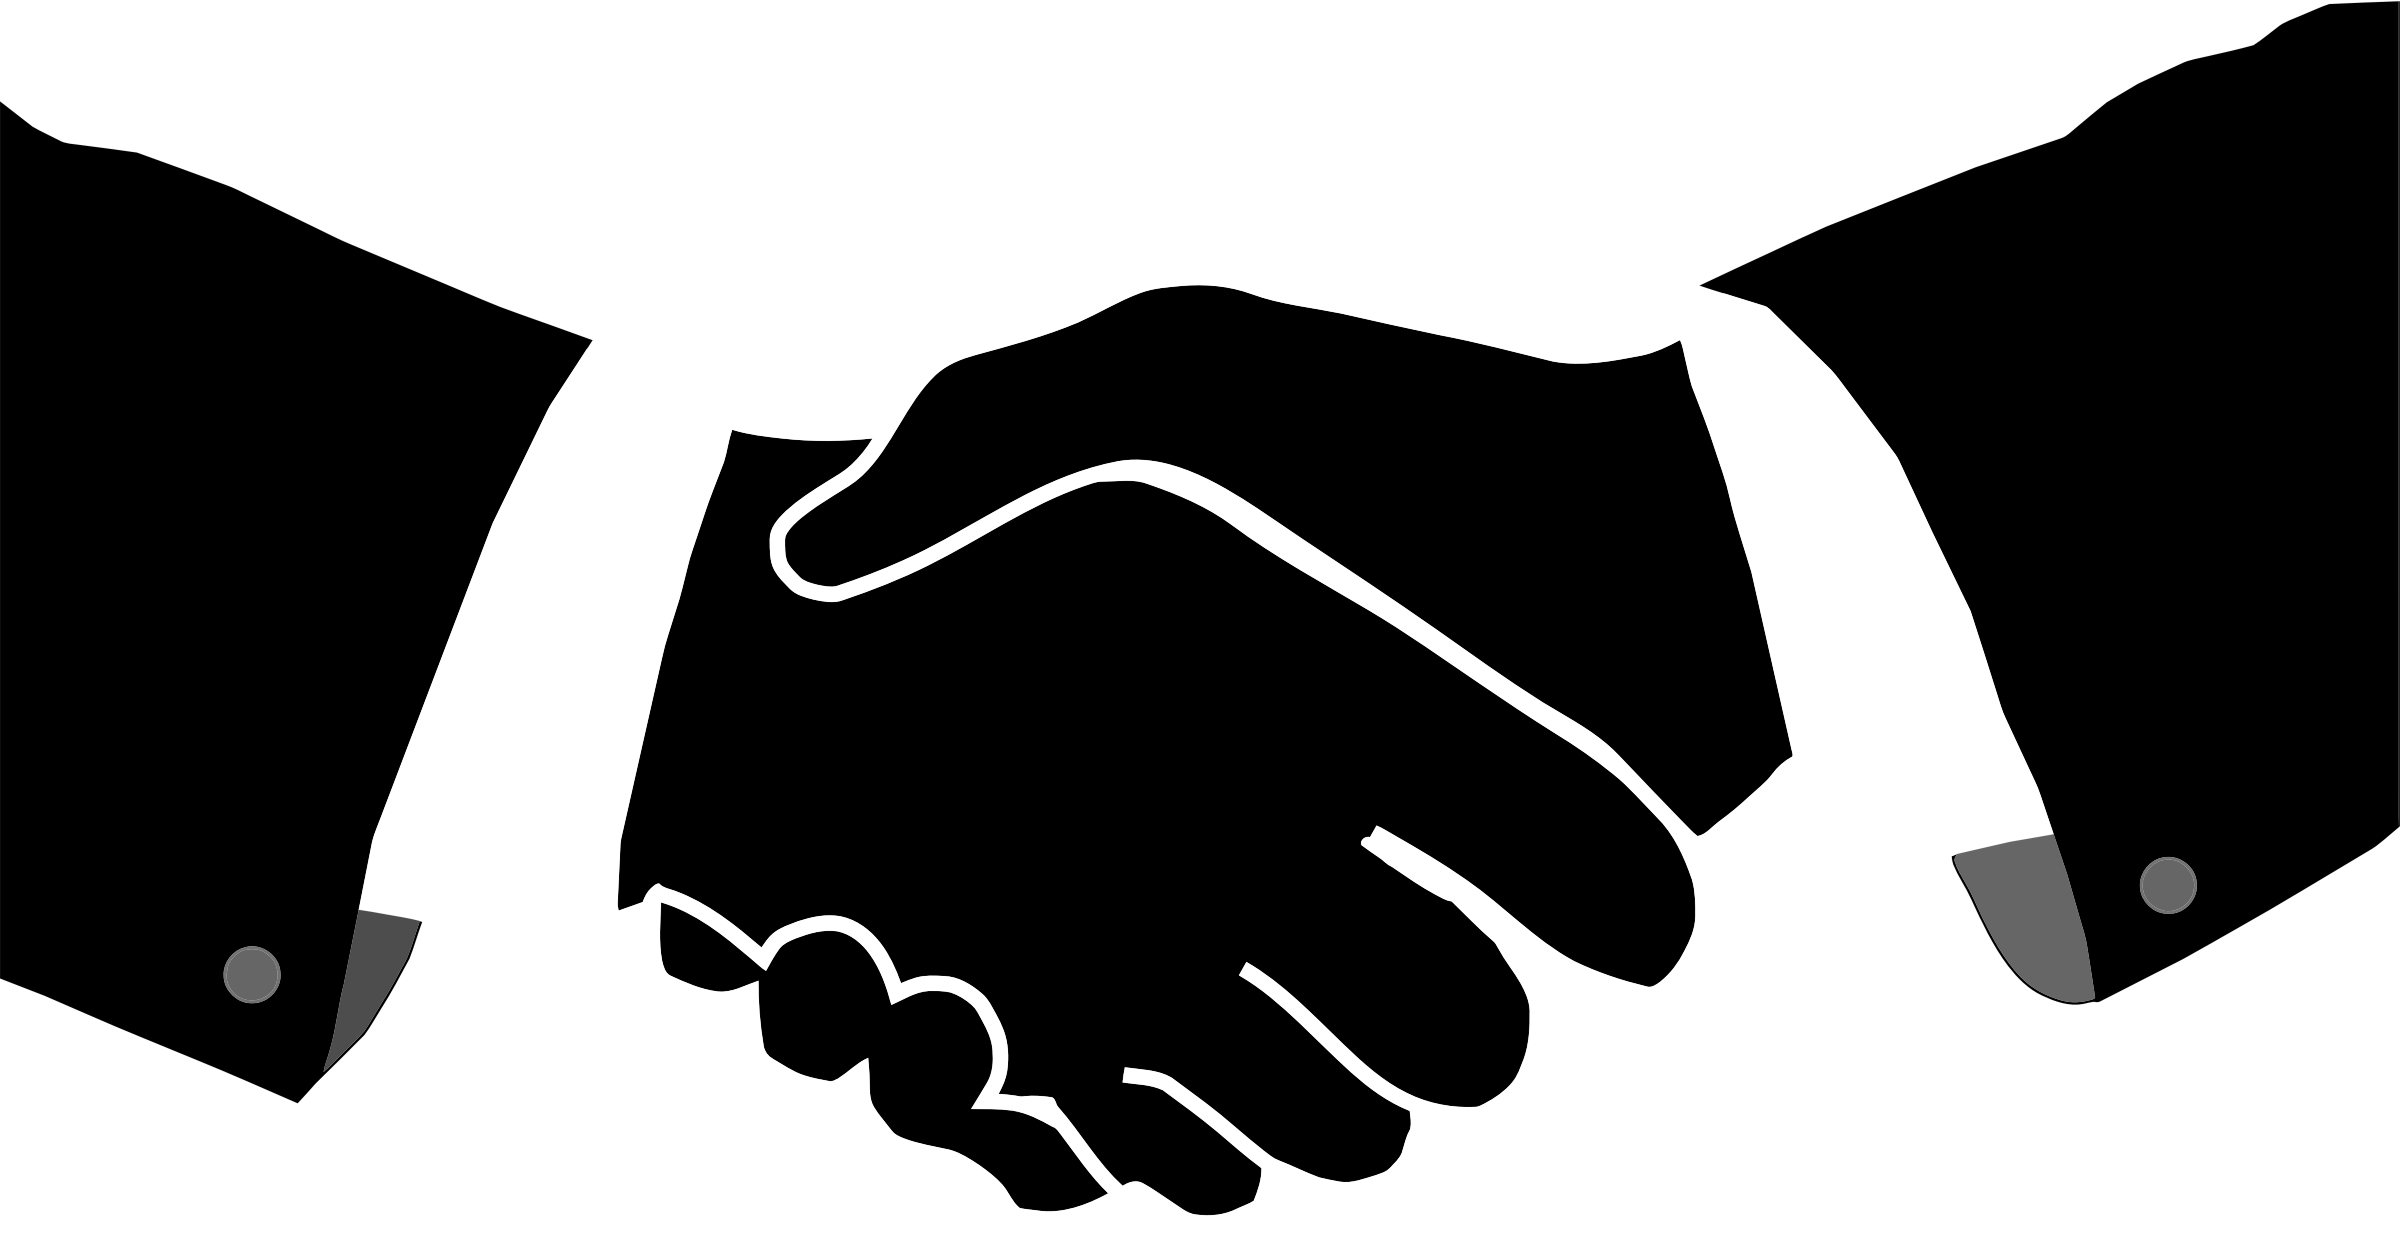 Handshake clipart png. Collection of transparent